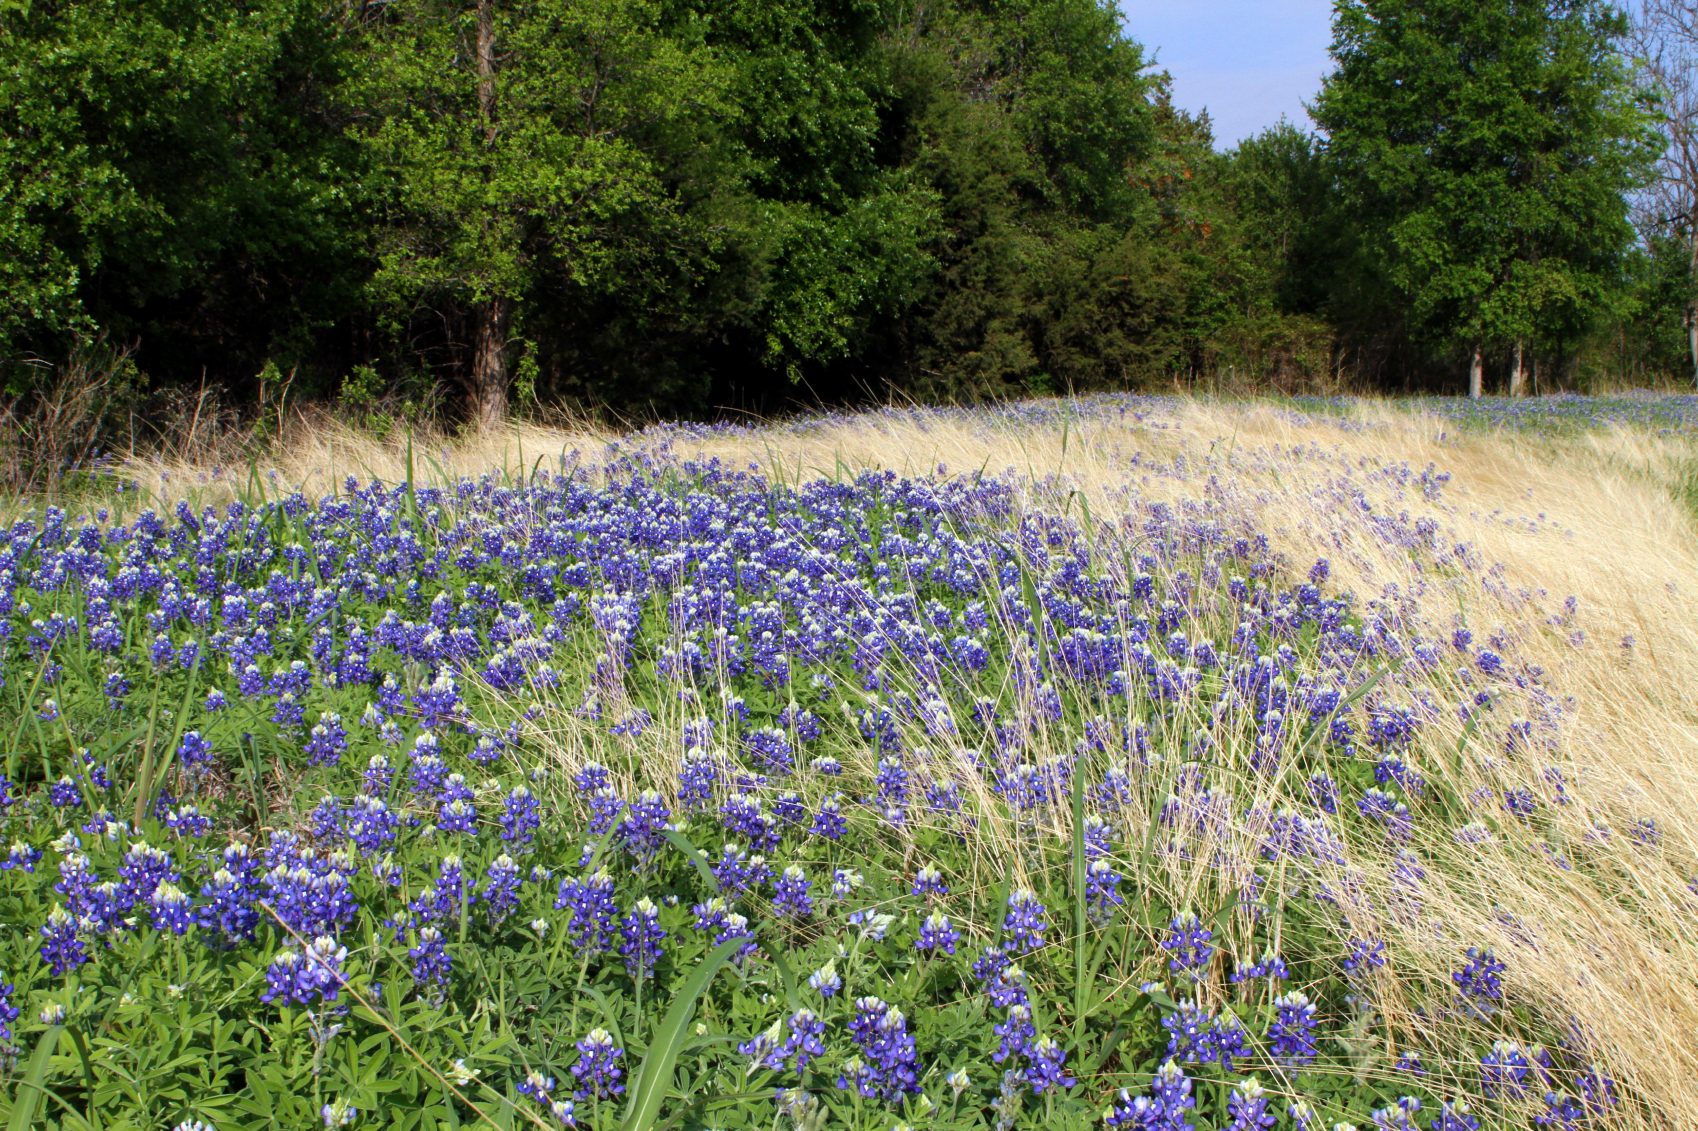 Menger Cottages - Texas Hill Country Bluebonnets